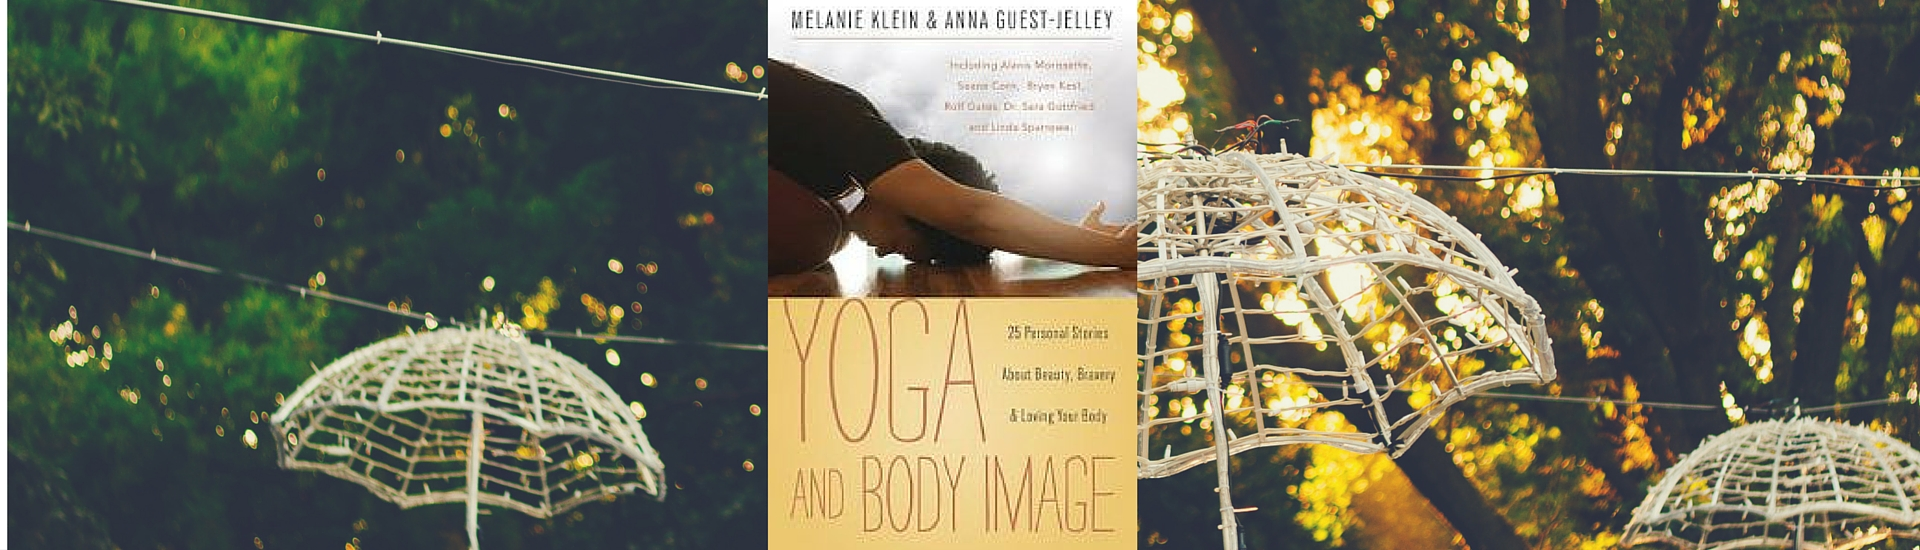 YogaShelf Book Review: Yoga for Body Image